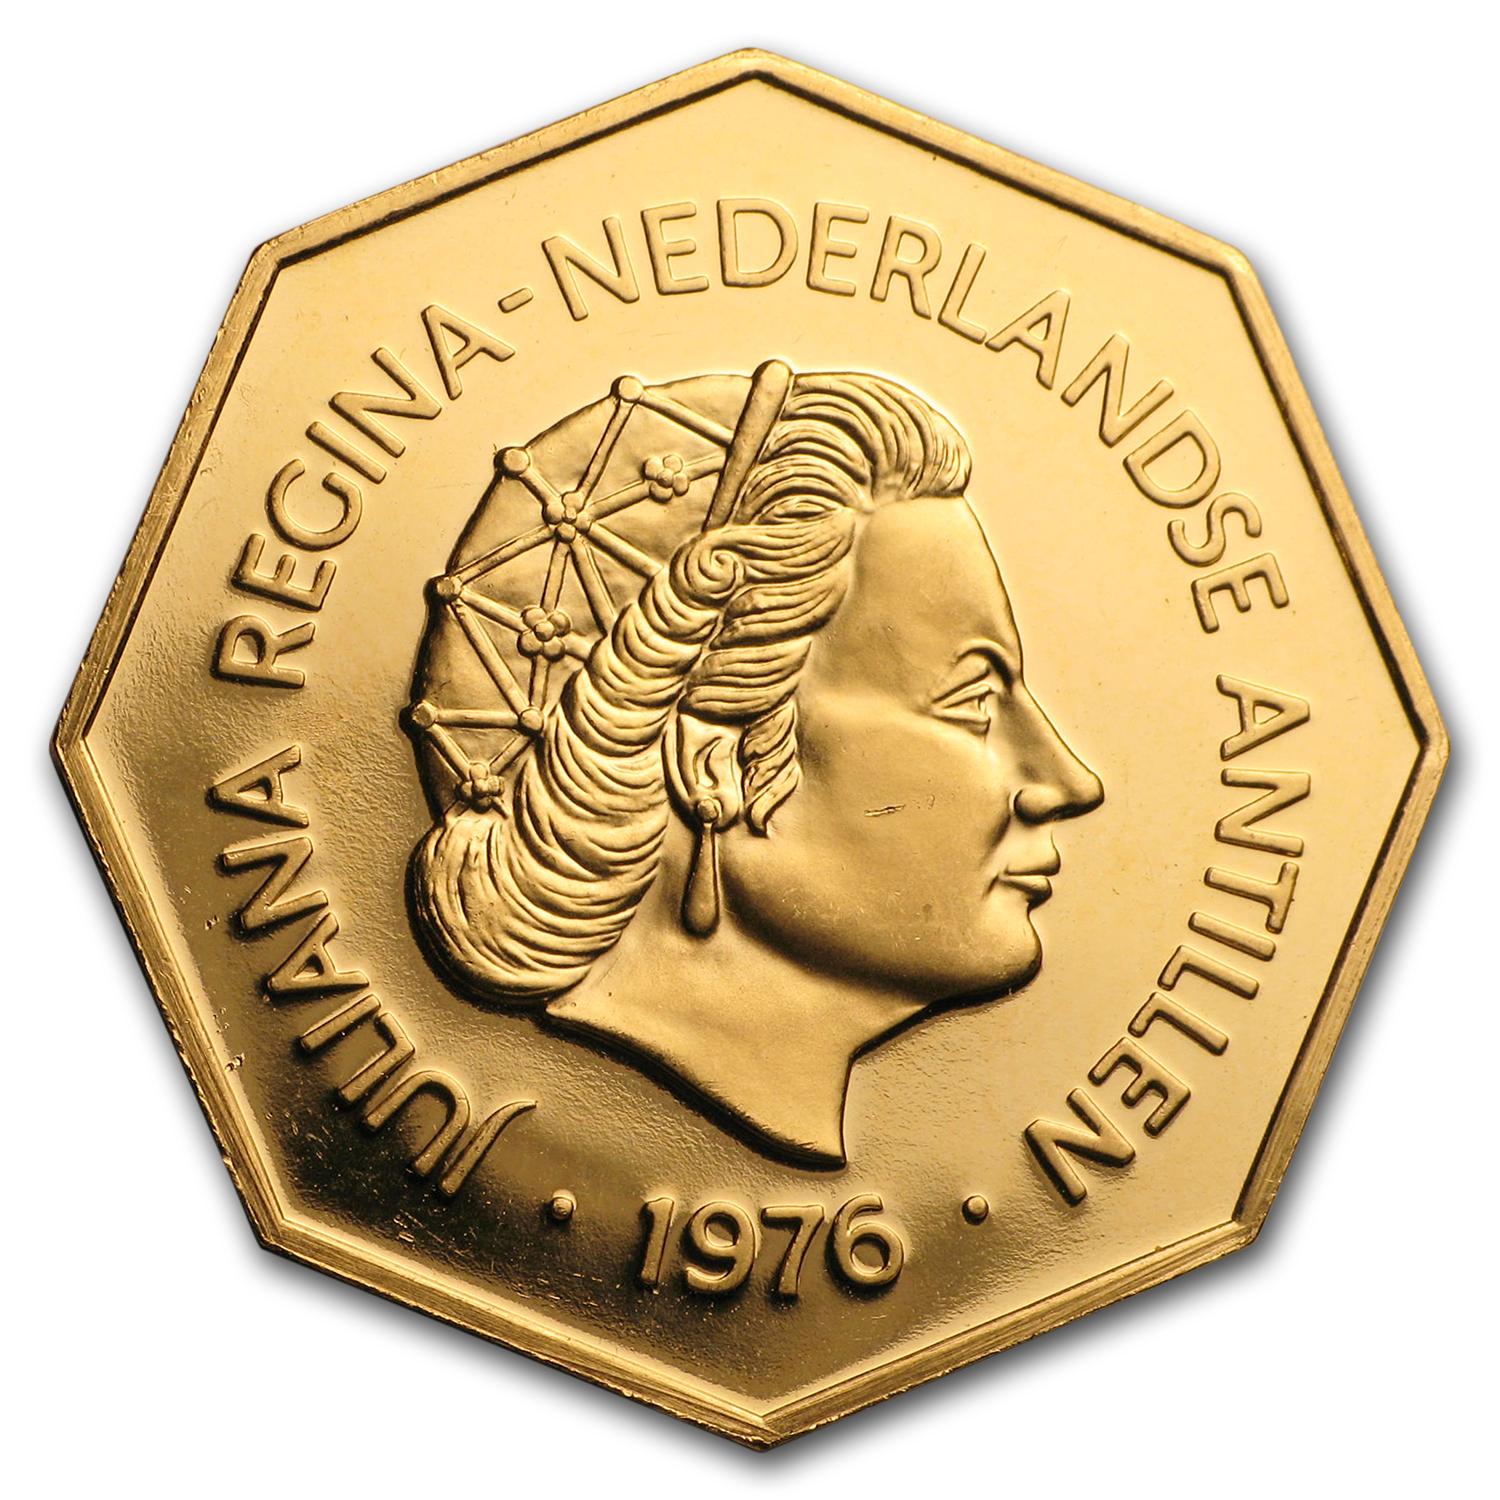 Netherlands Antilles 1976 Gold 200 Gulden BU/Proof